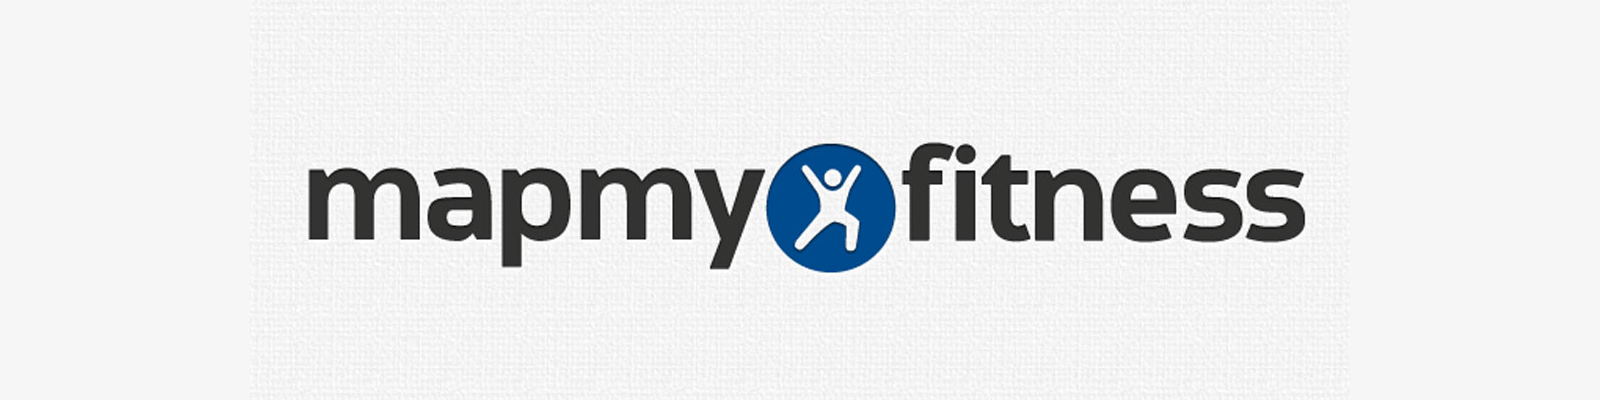 app like map my fitness